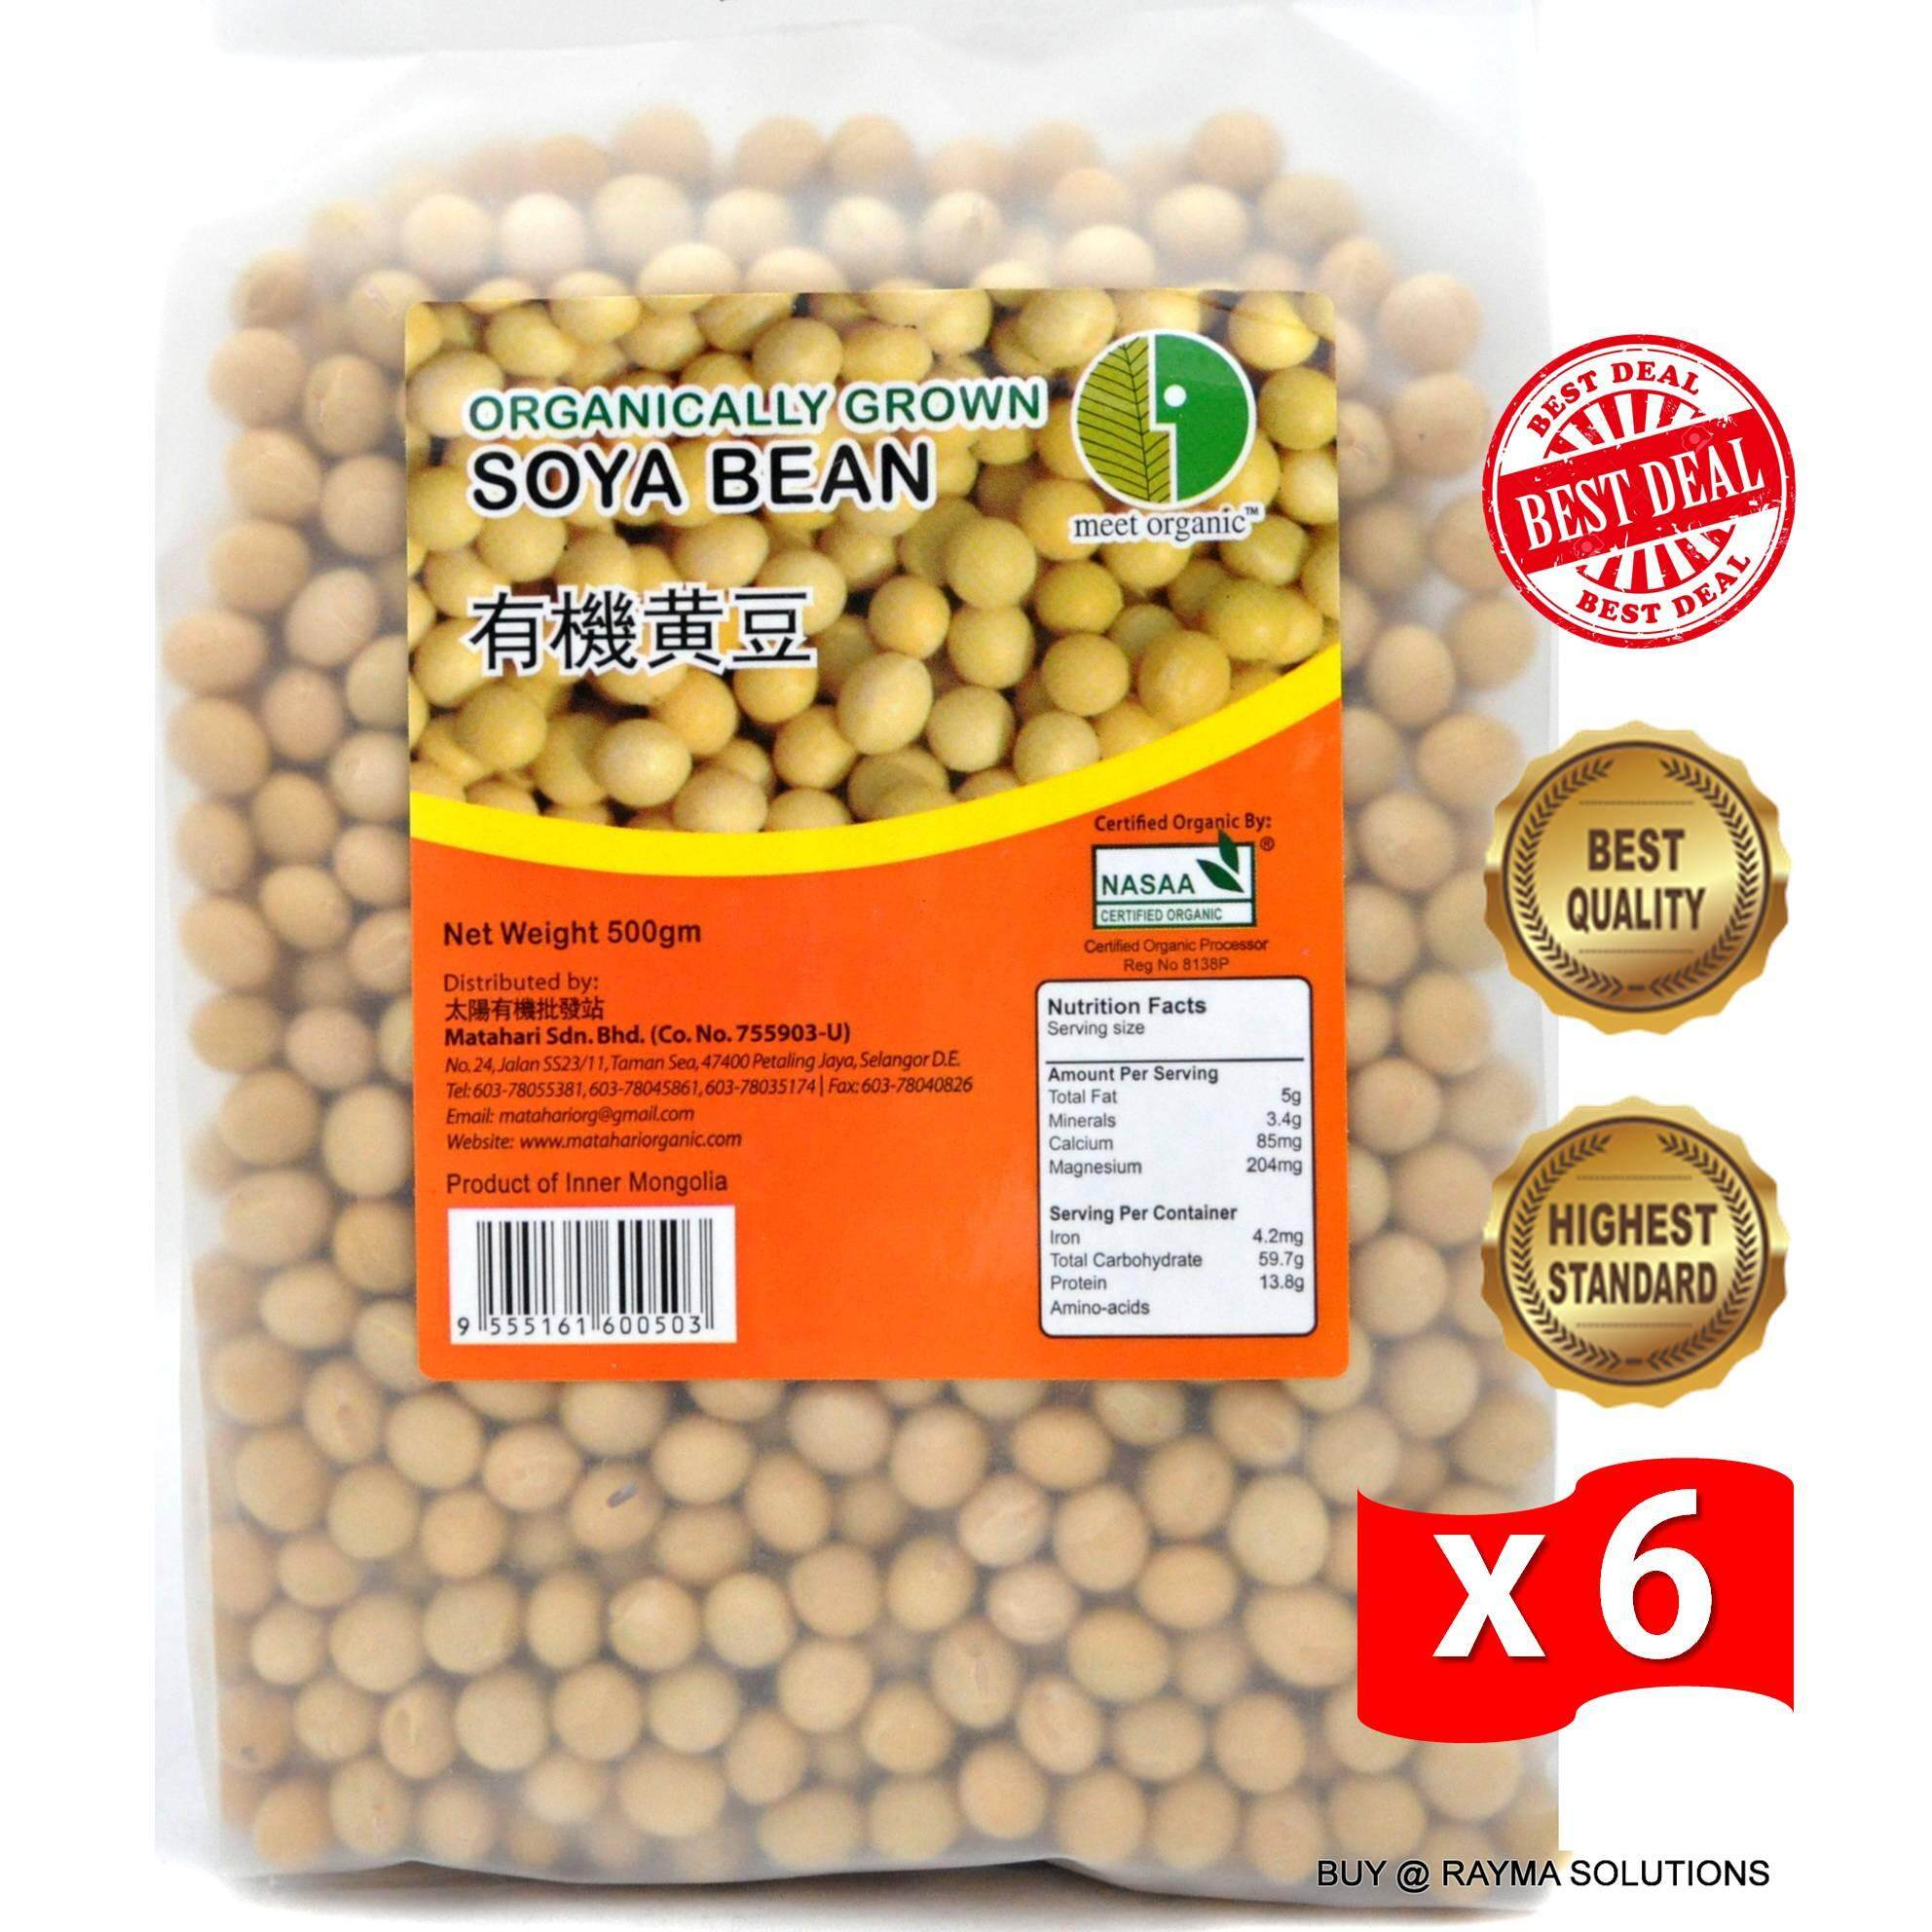 [BE$T Deal!] MH FOOD Organically Grown Soya Bean 500g (6 Packs)